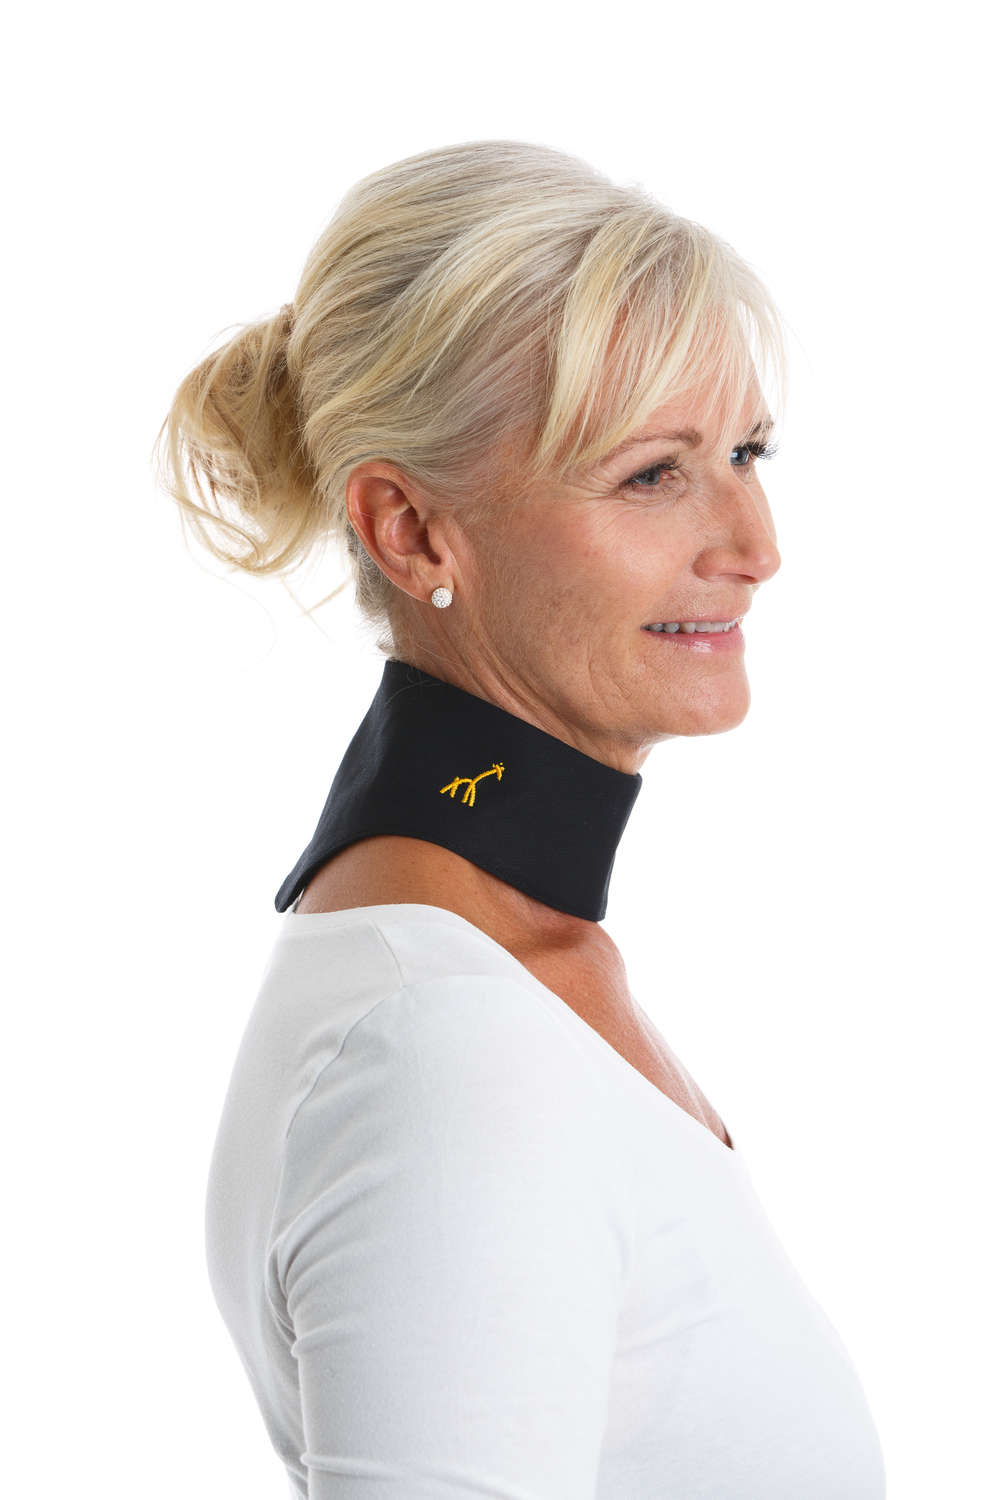 GIRAF ORIGINAL   Our bestseller and original. Made from 100% organic certified cotton. Giraf Original protects and warms the area where the neck turns into cervical spine. Used in the prevention and mitigation of existing problems such as whiplash, arthritis, stiff neck or neck pain. Click to read more